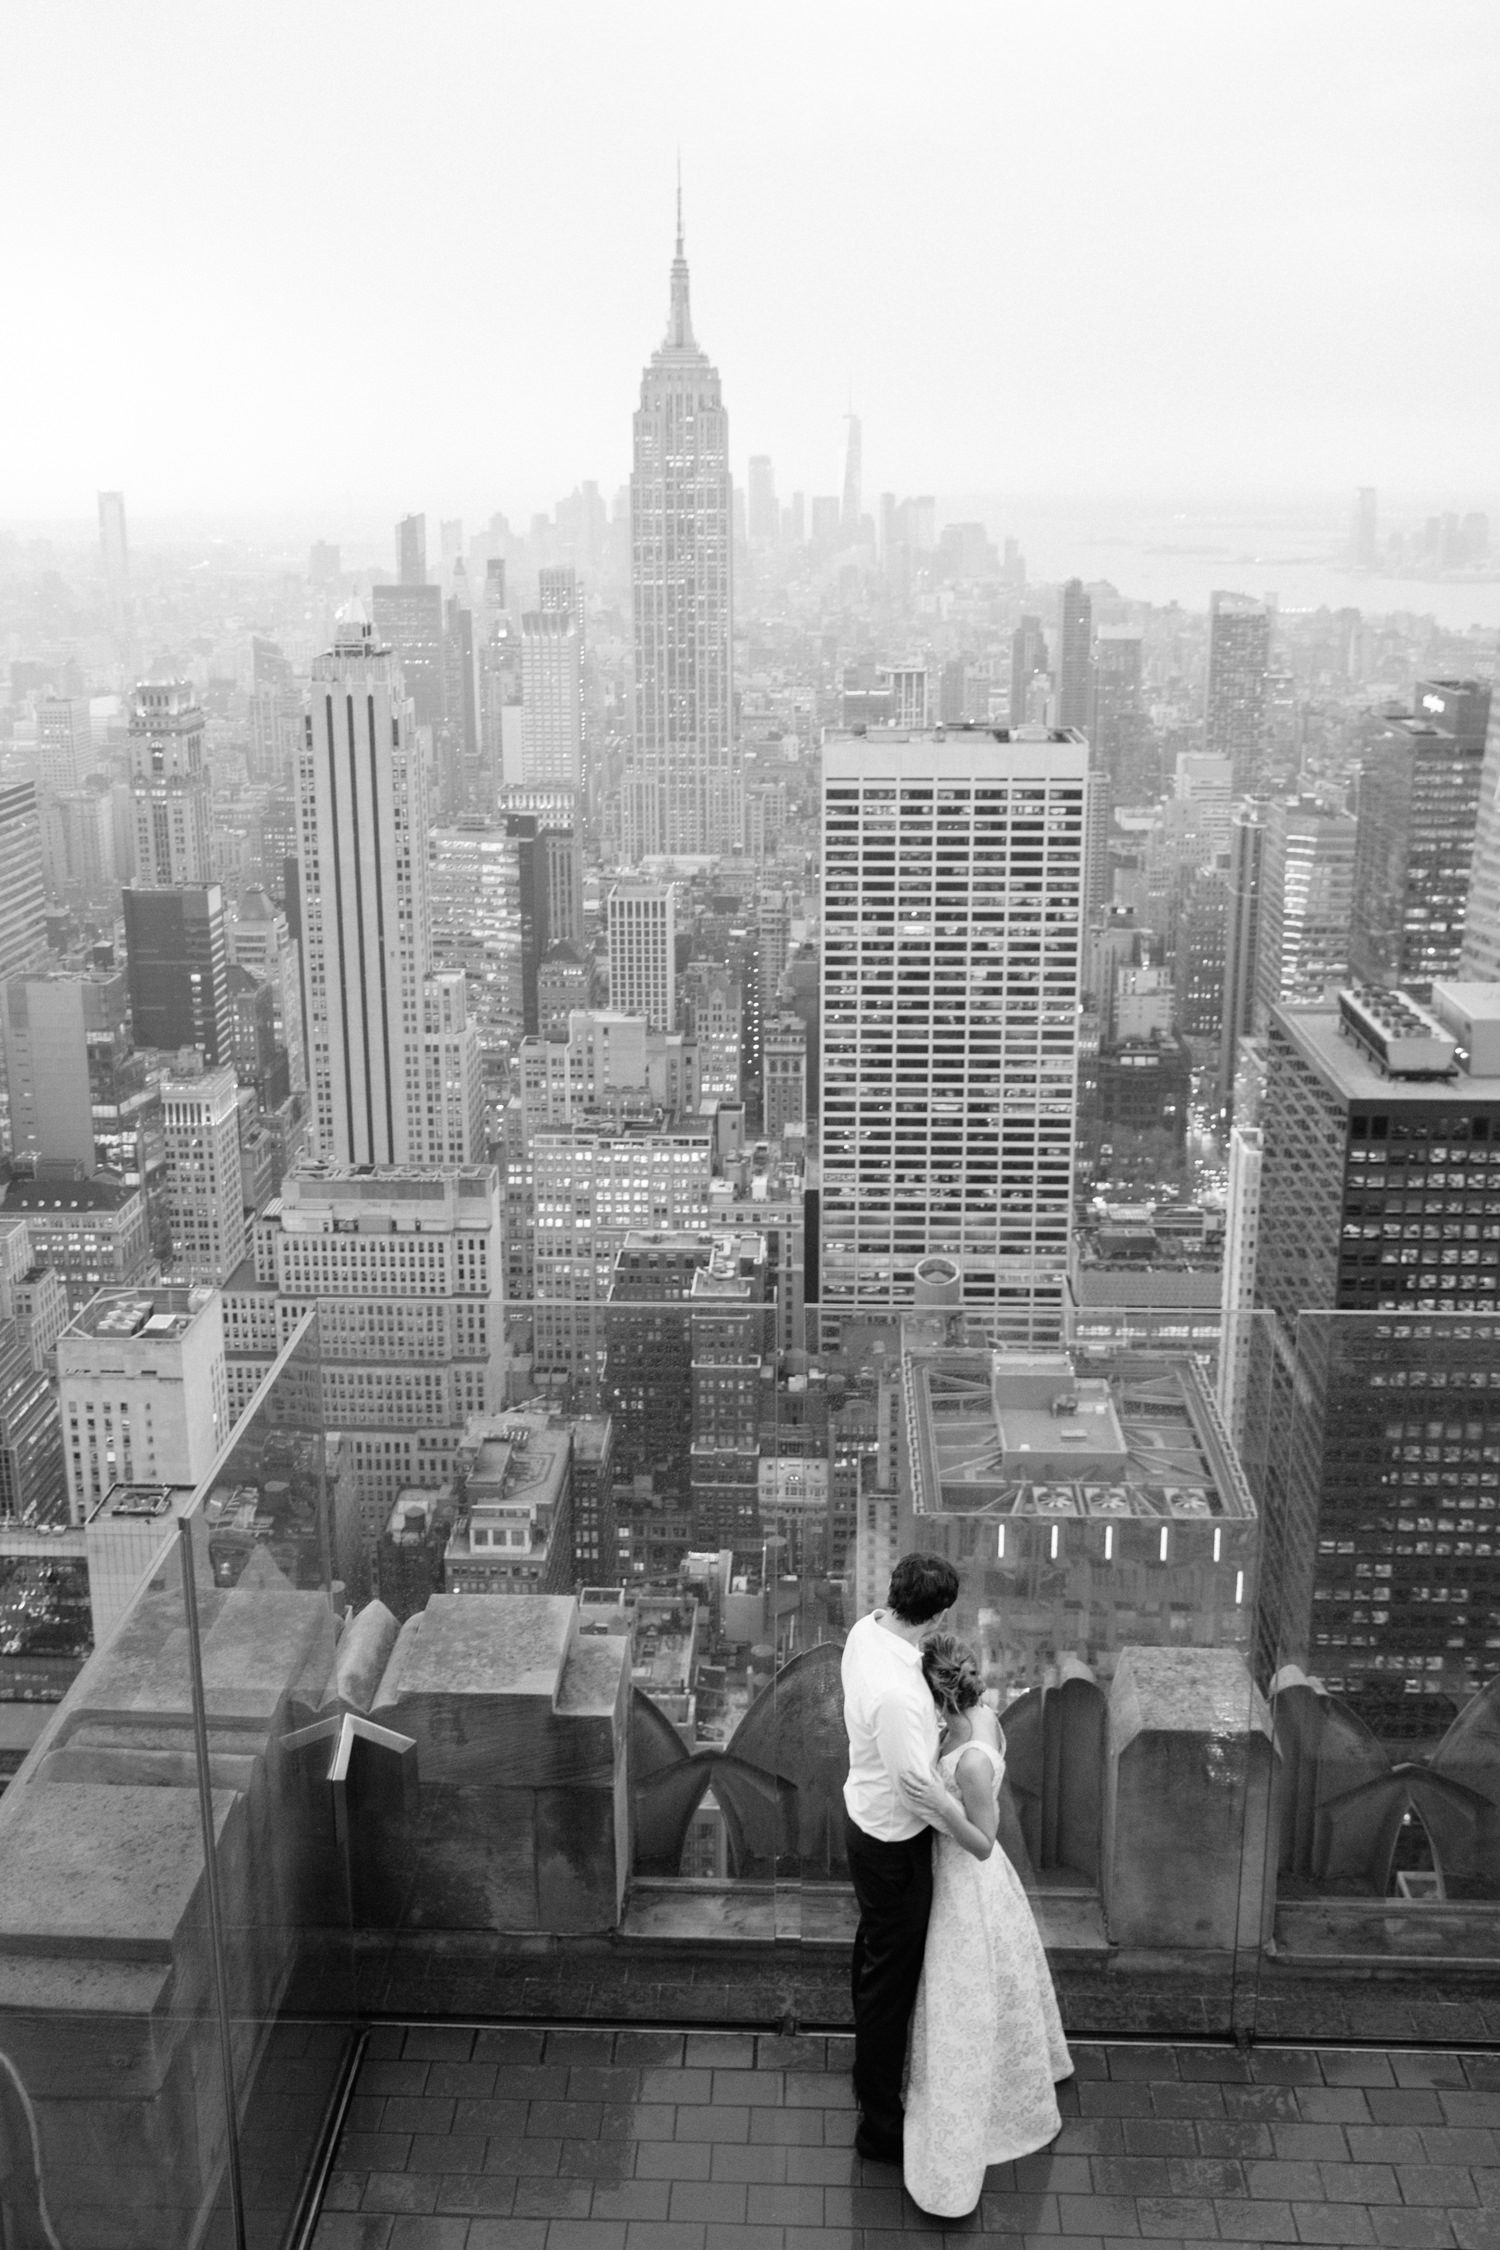 NYC-Top-of-the-Rock-wedding-photos-L&B-16.jpg